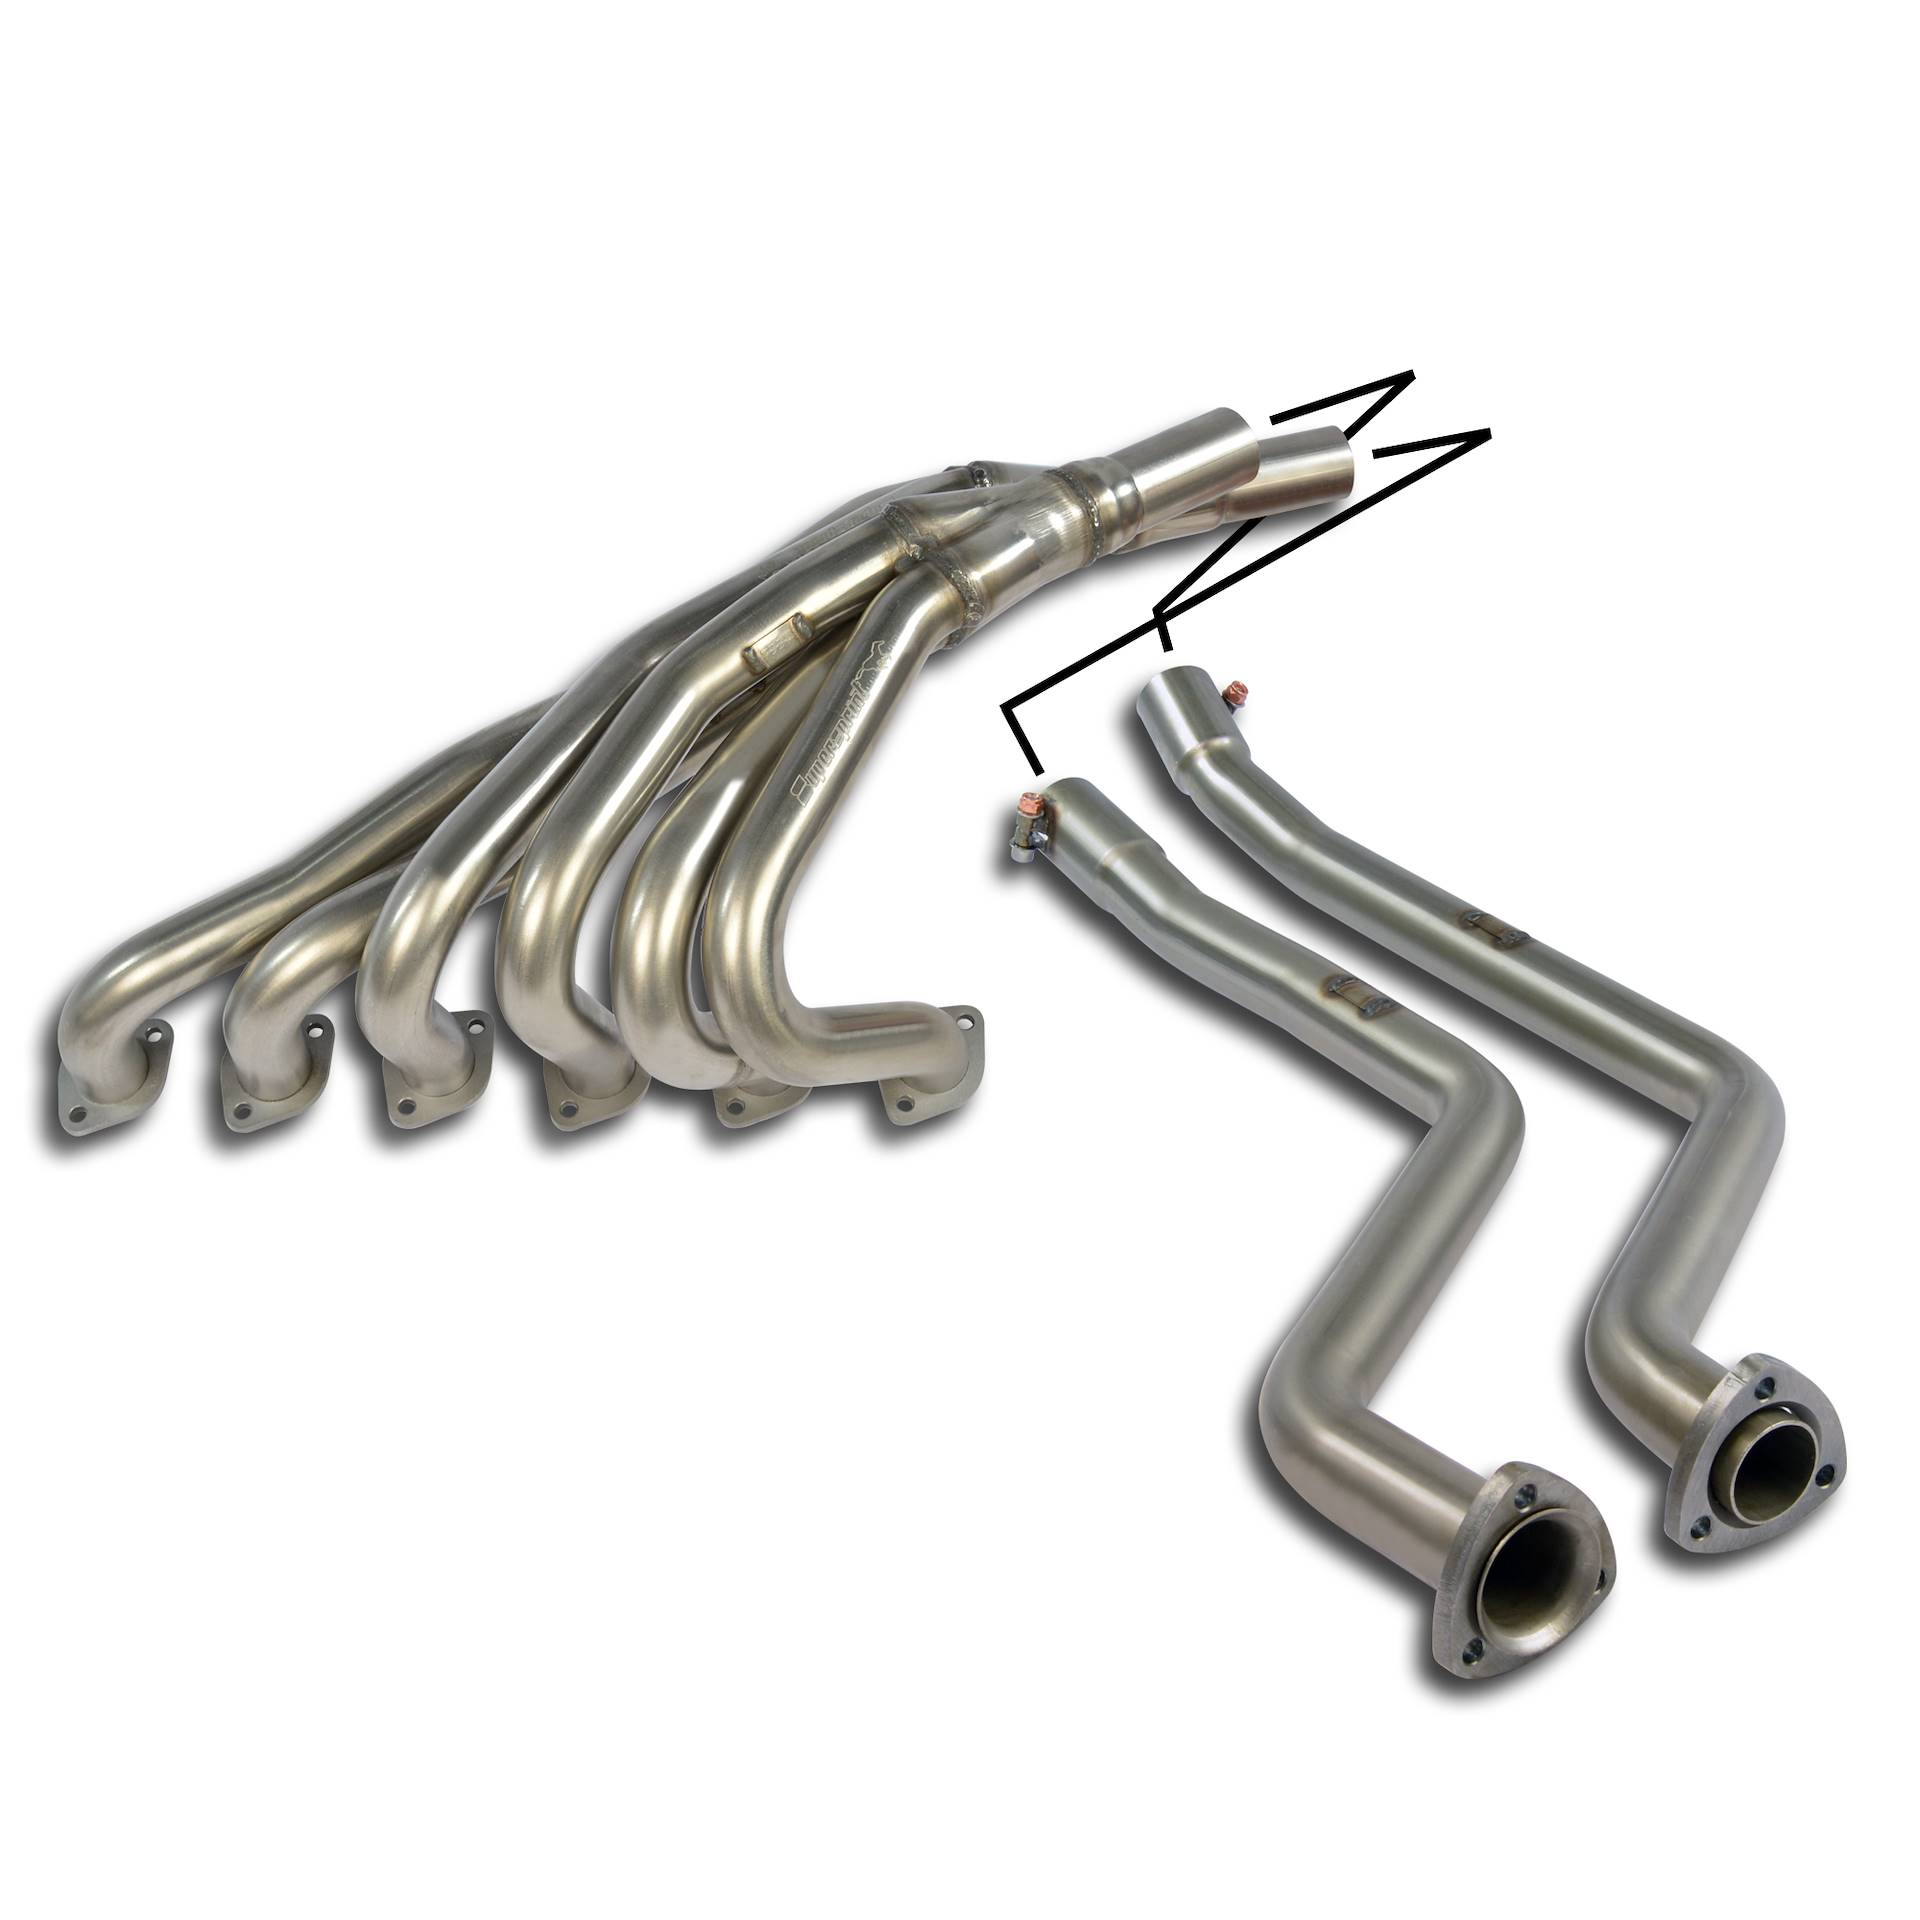 Alpina BMW - ALPINA C1 (E21) 2.3i ' 80 -> ' 83  Manifold 100% Stainless steel, performance exhaust systems